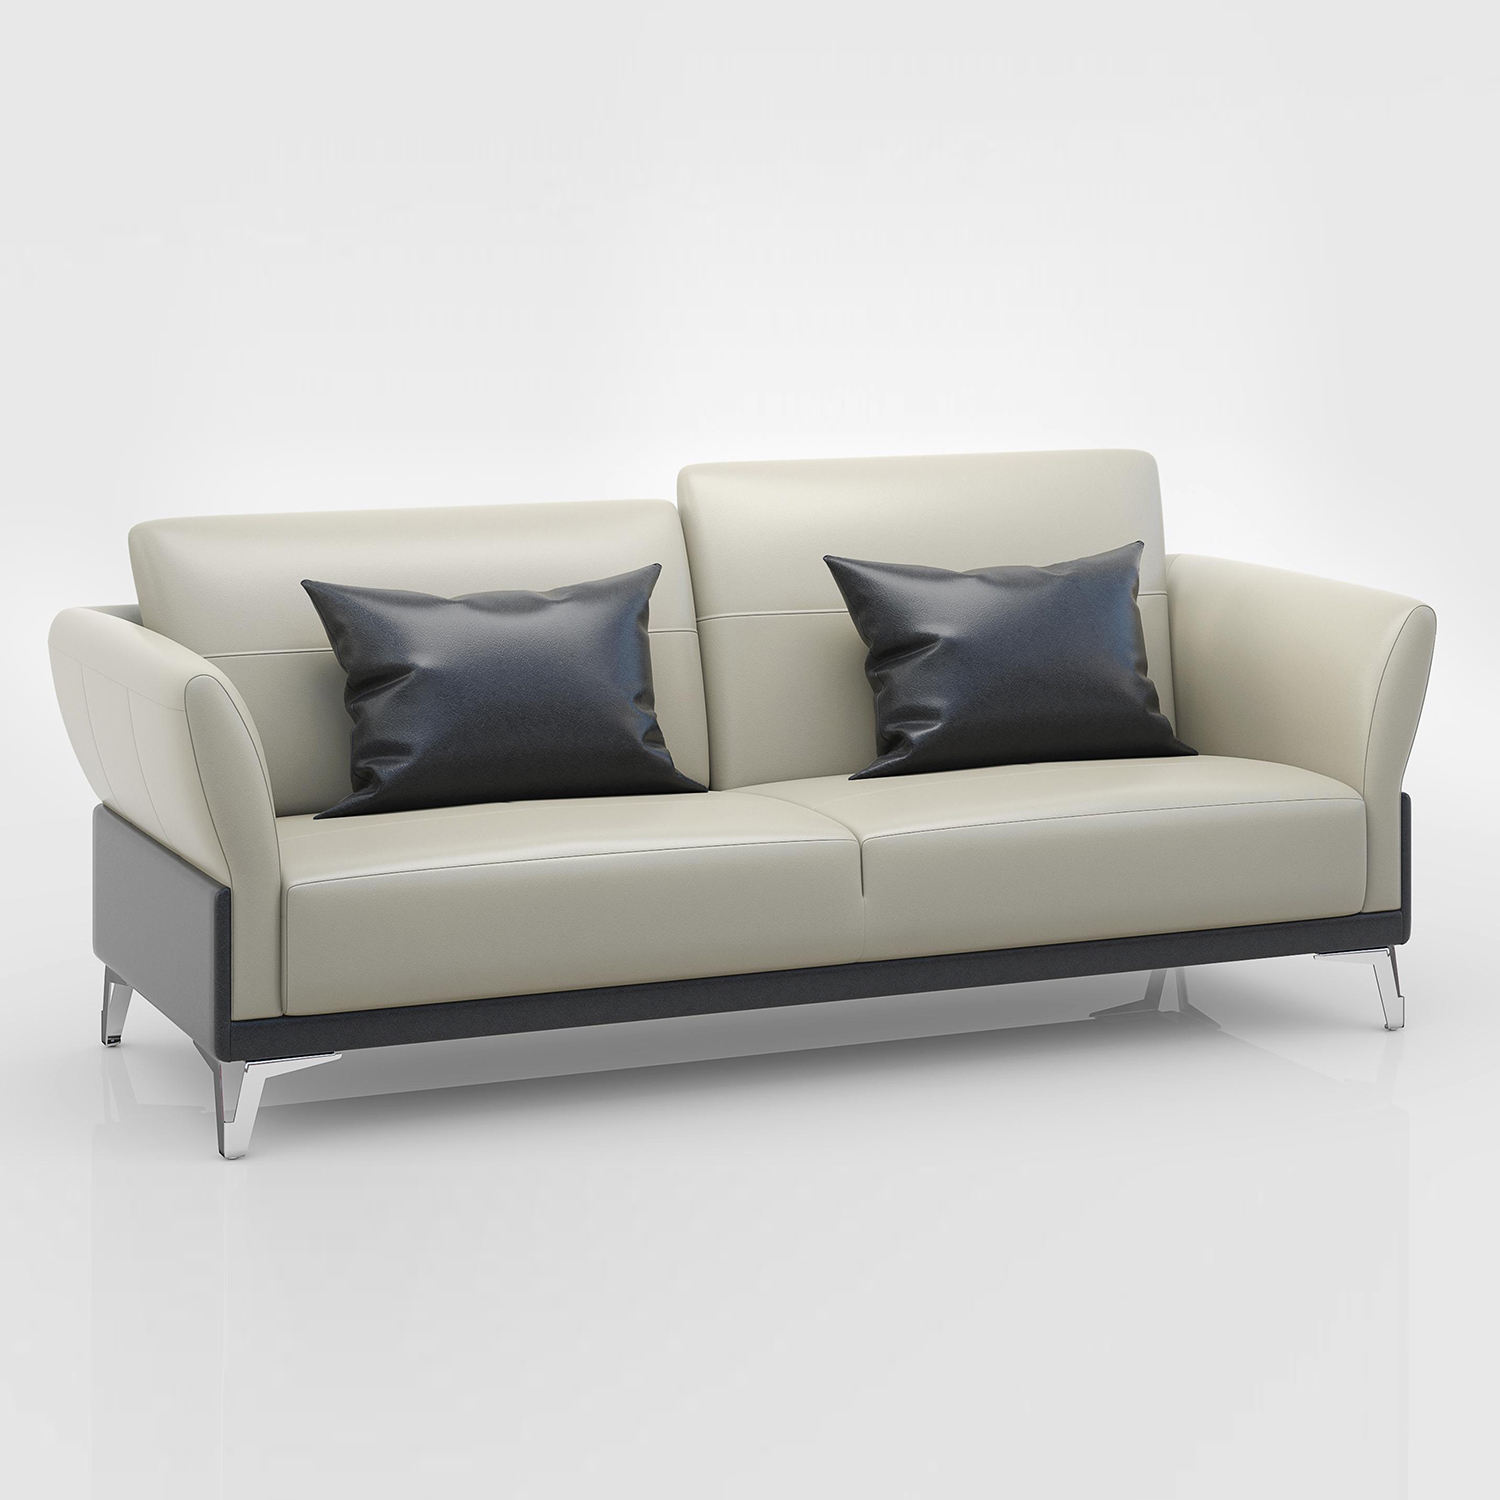 Modern New Design Commercial Office Furniture Executive PU Leather Office Sofa